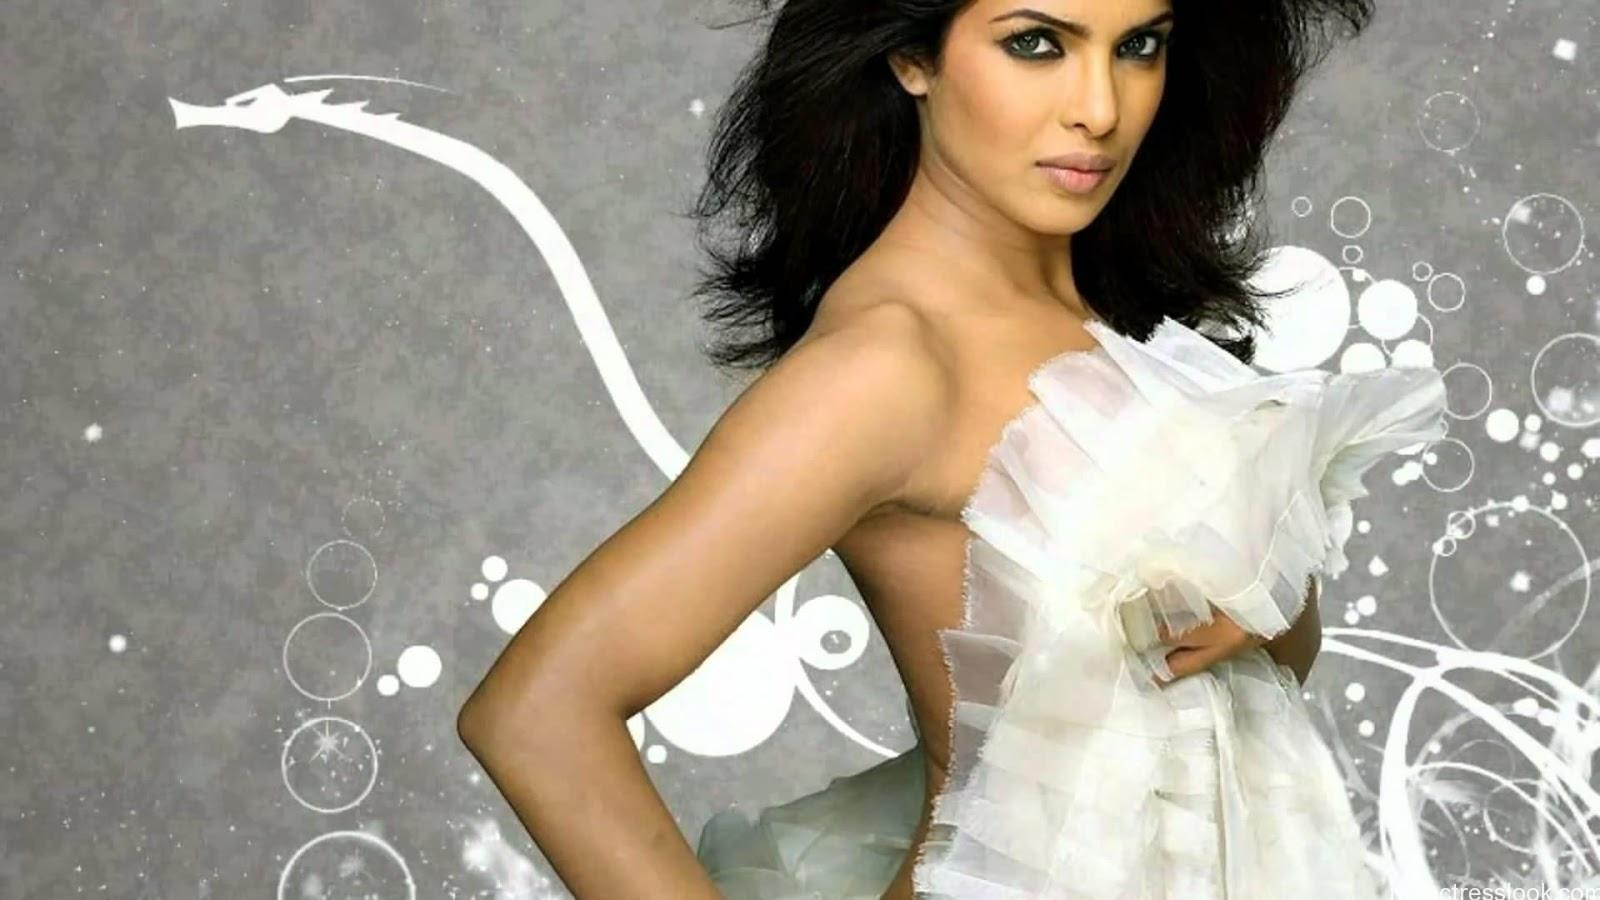 priyanka-chopra-all-hot-photo-shoot-for--635753057488510665-14343.jpg